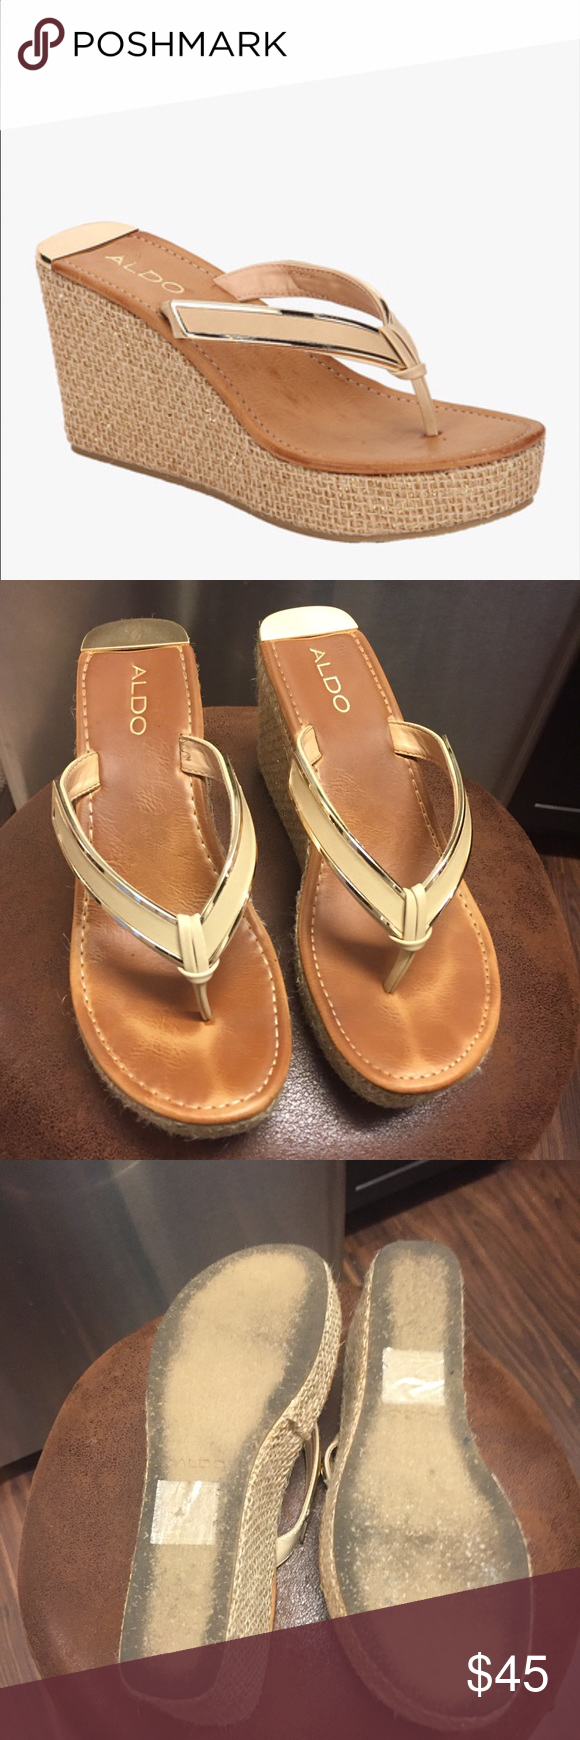 0f35f77343 Aldo Jeroasien wedge sandal Like new, Aldo wedge sandal, slight wear, worn  once! Approx 4